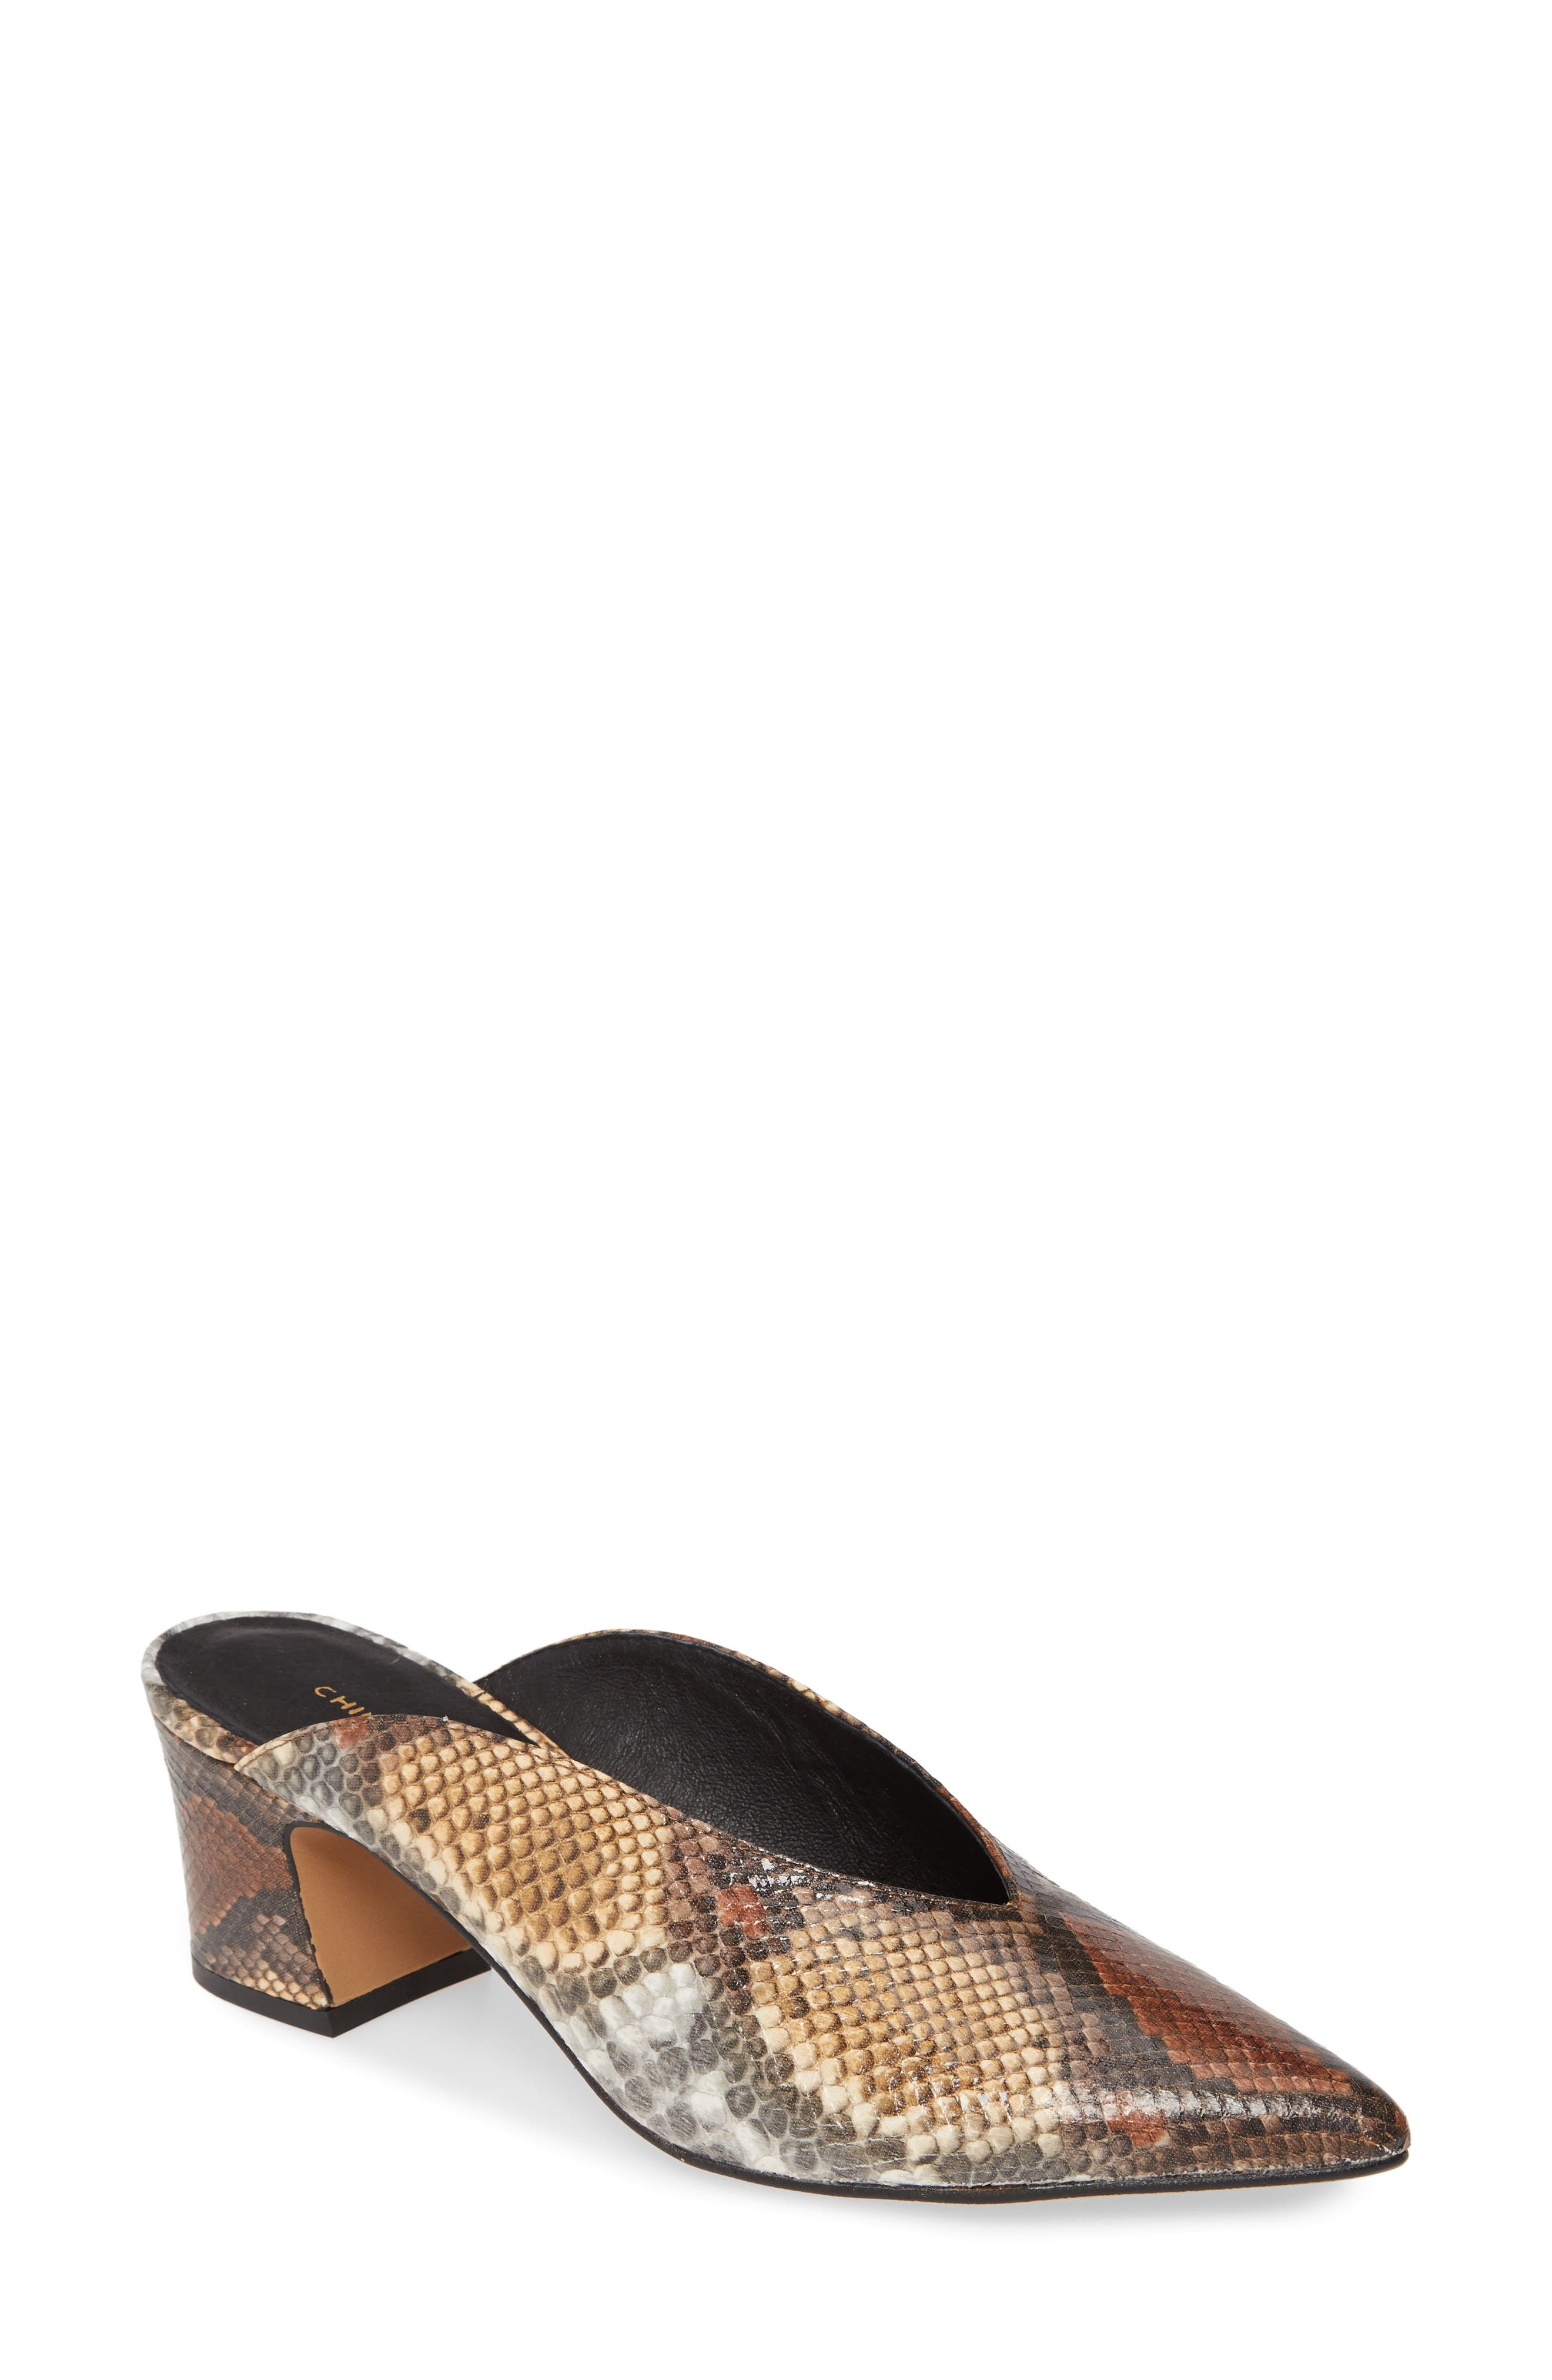 Chinese Laundry Pollie Mule, Brown